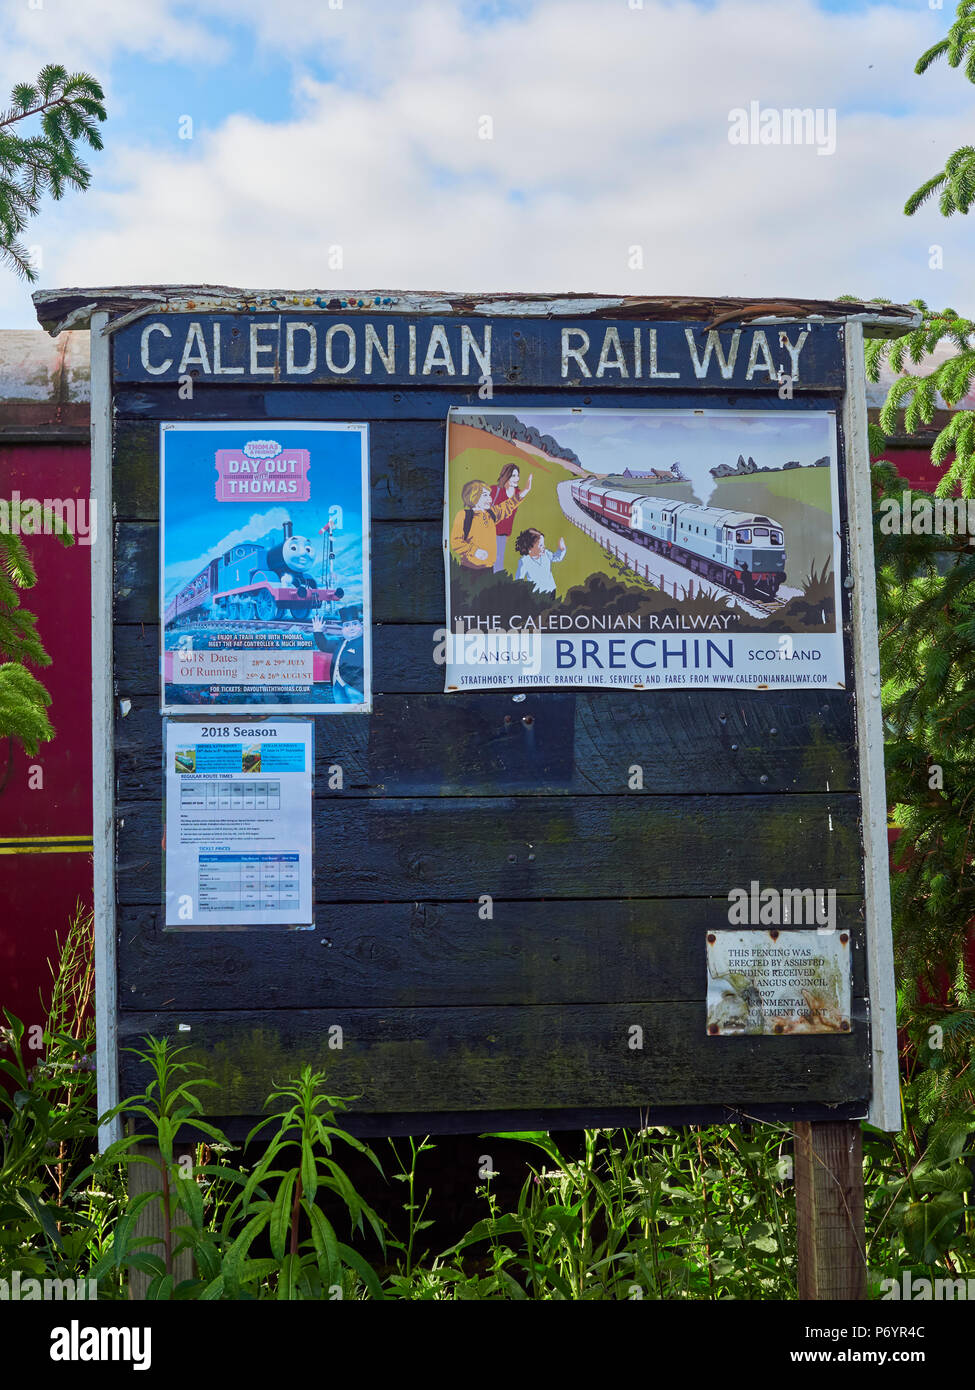 The Old Noticeboard for Coming Events at the Caledonian Railways Bridge of Dun Station Car Park in Angus, Scotland. - Stock Image